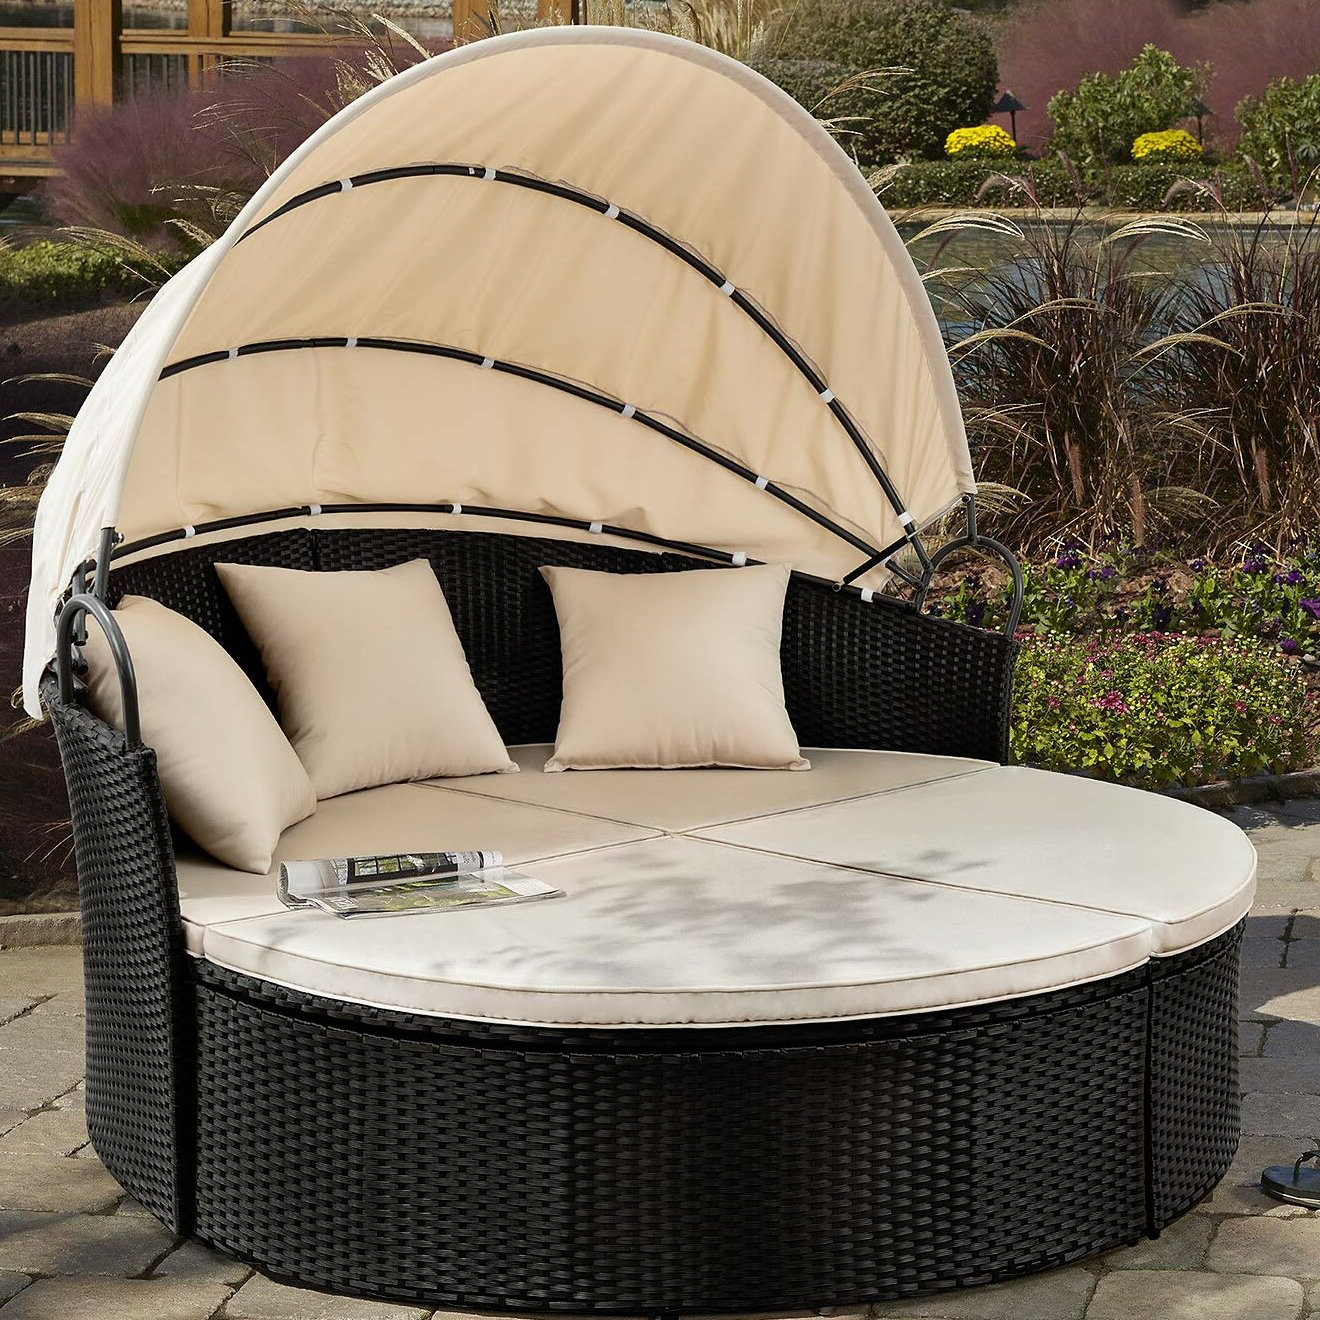 Leiston Round Patio Daybed With Cushions Pertaining To 2019 Behling Canopy Patio Daybeds With Cushions (View 4 of 25)